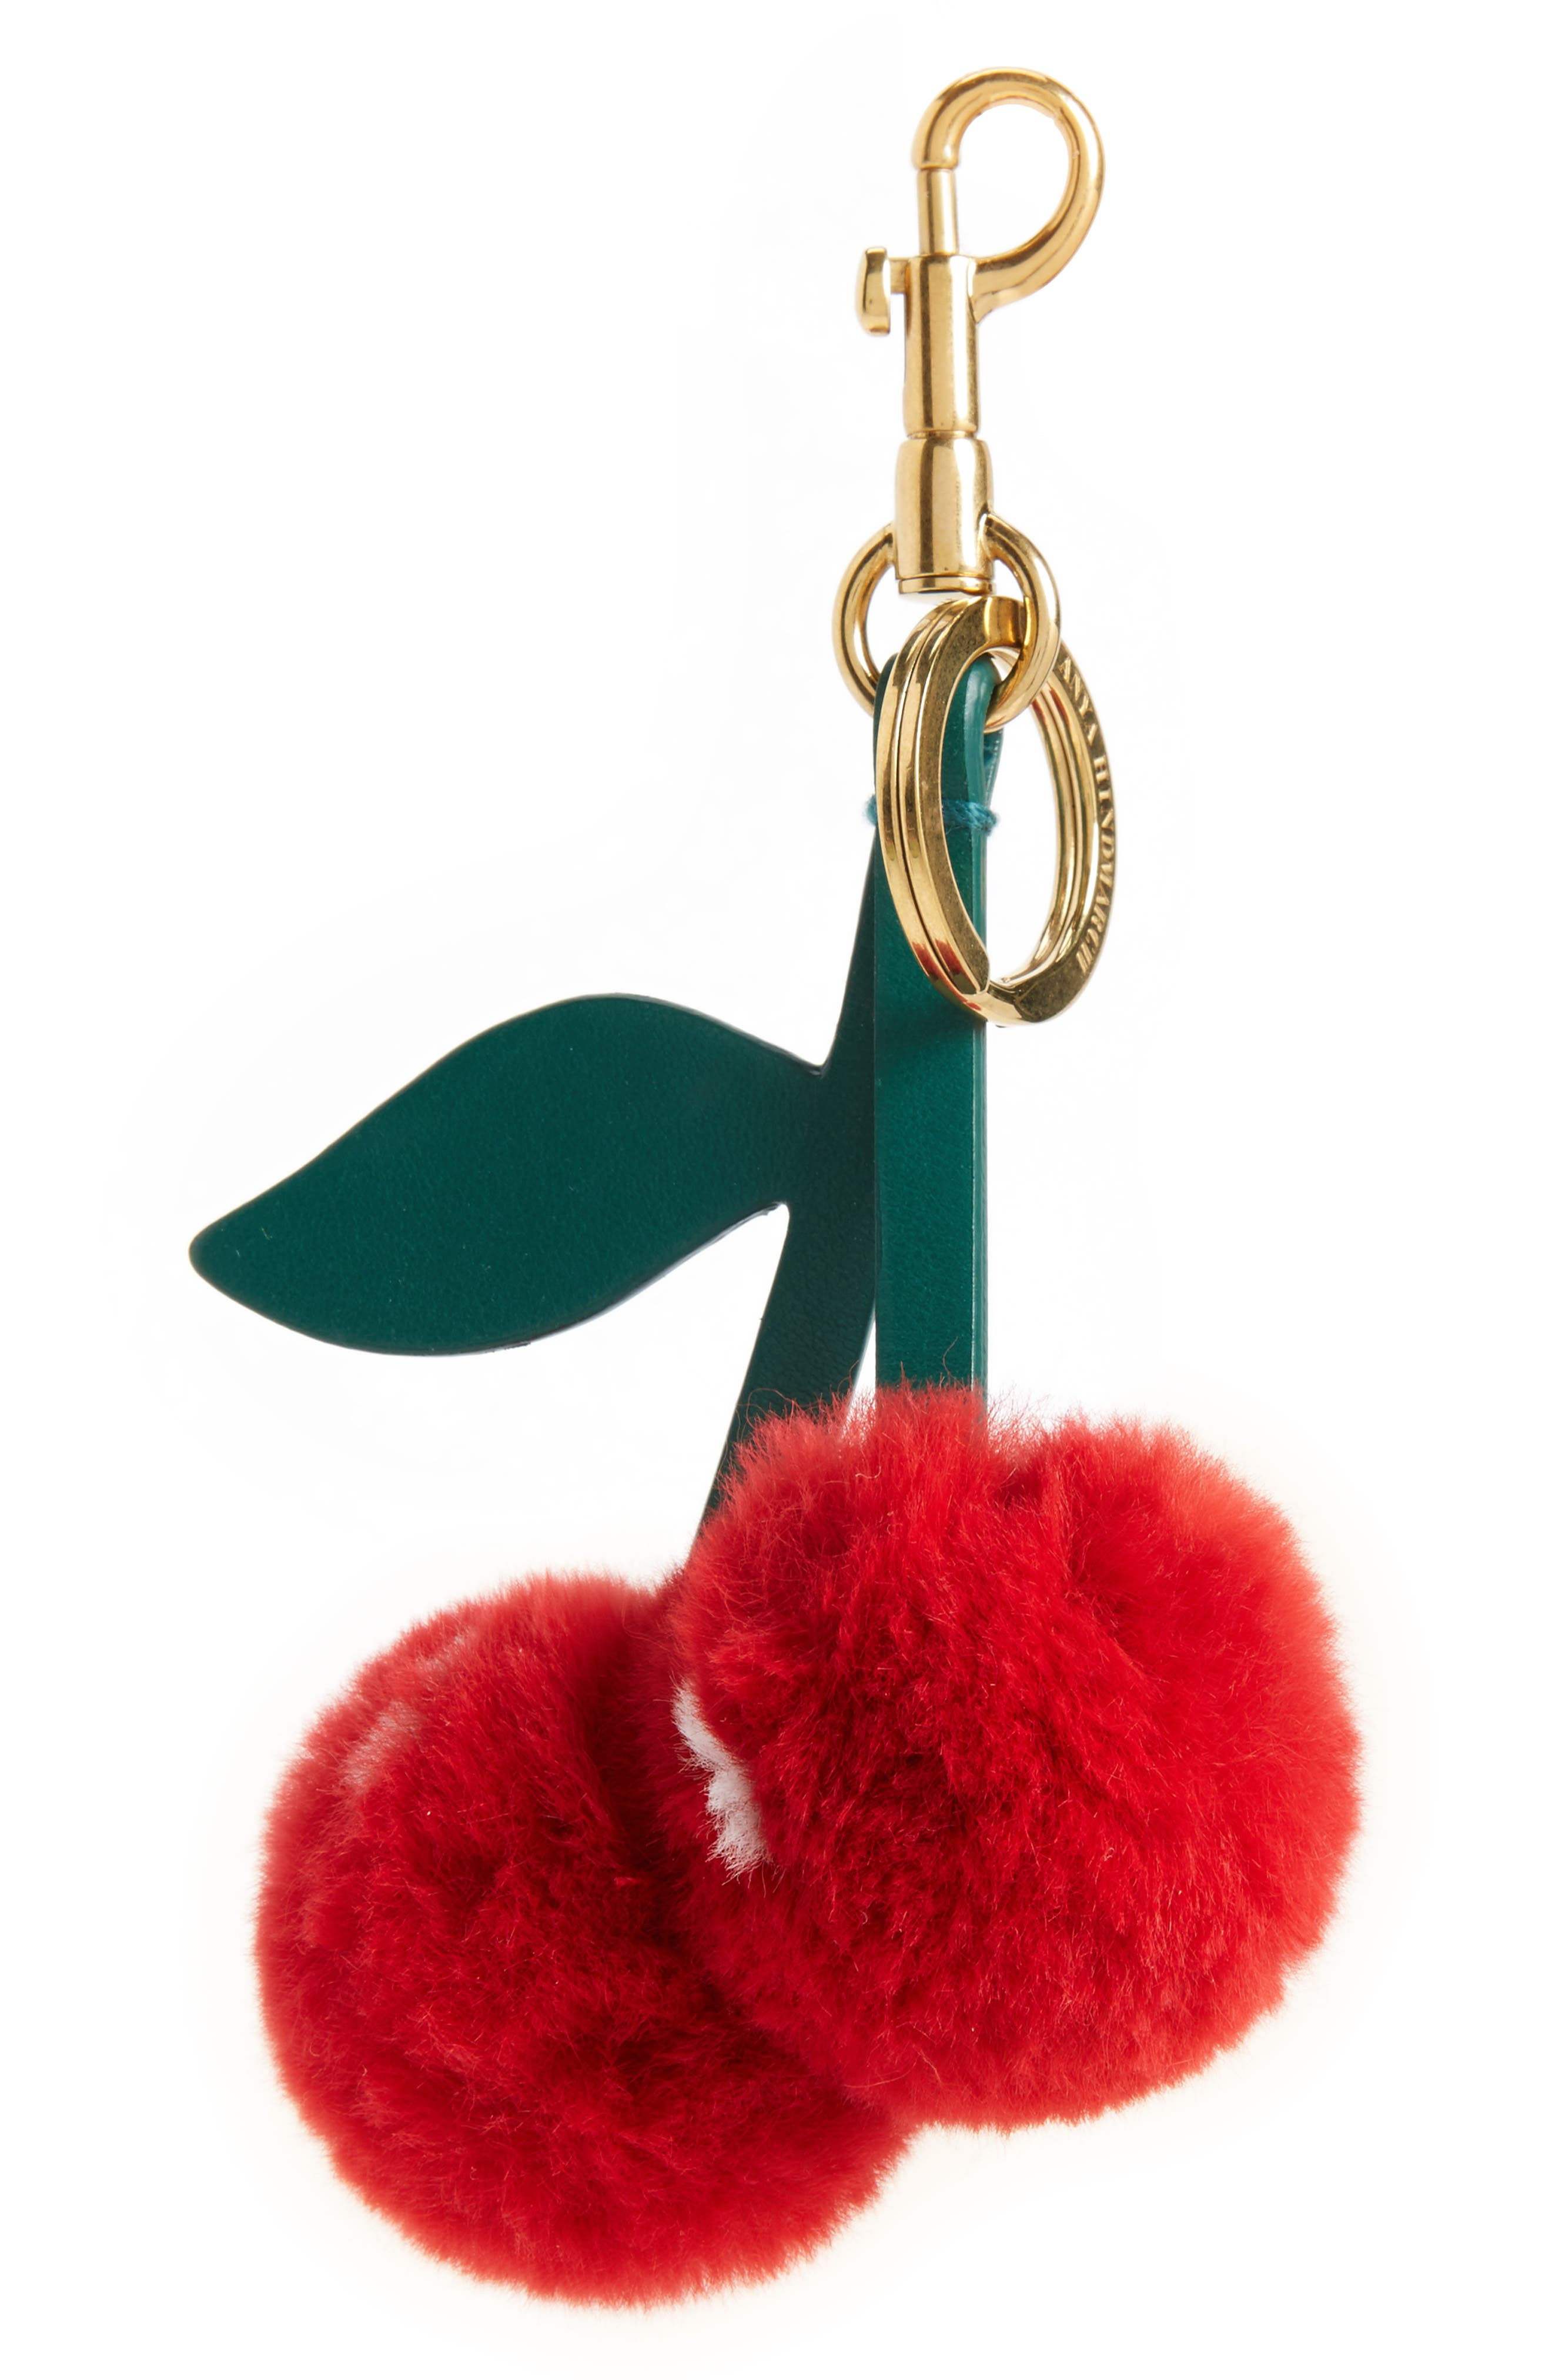 Cherry Genuine Rabbit Fur Bag Charm,                         Main,                         color, Bright Red